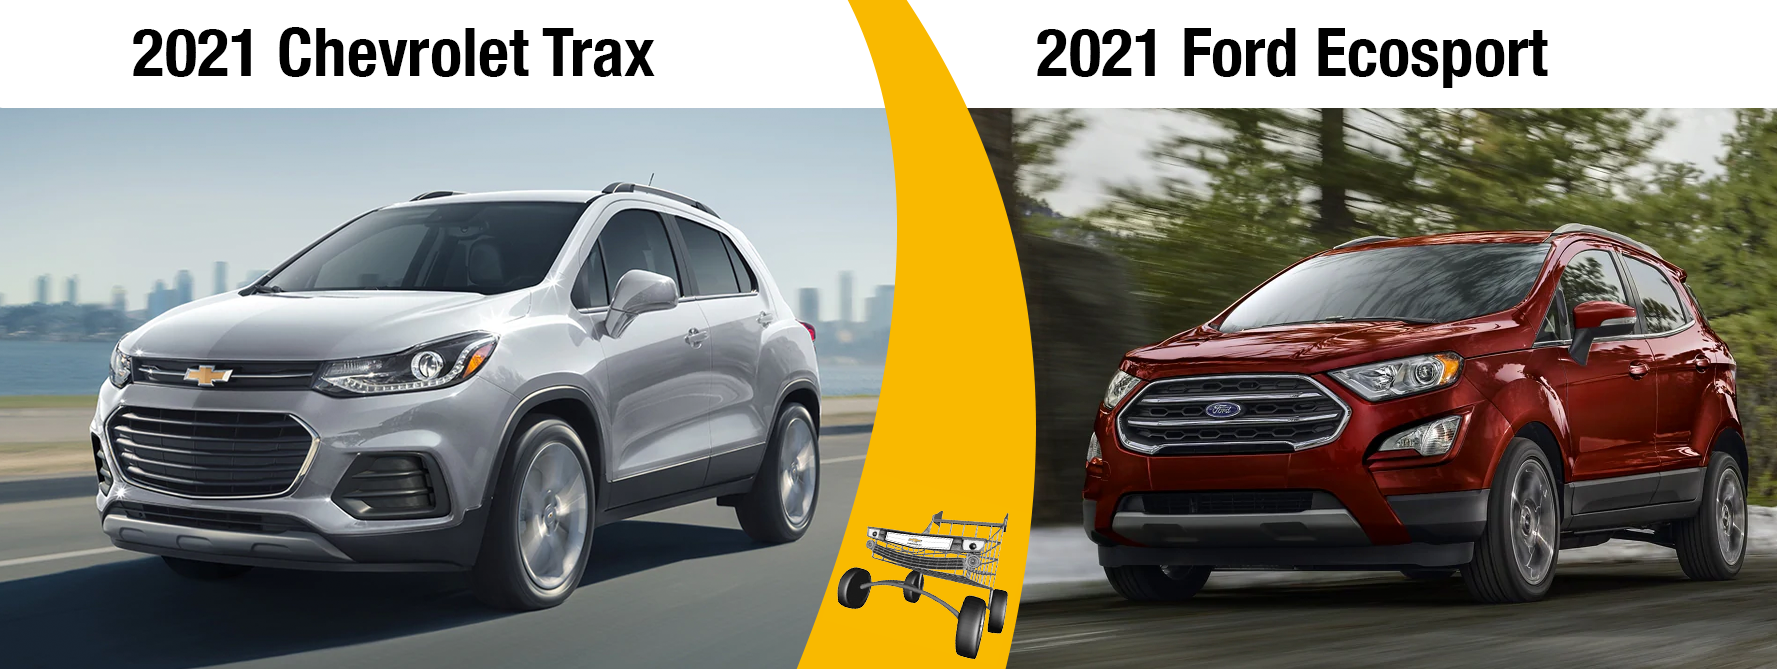 2021 Chevy Trax vs 2021 Ford EcoSport